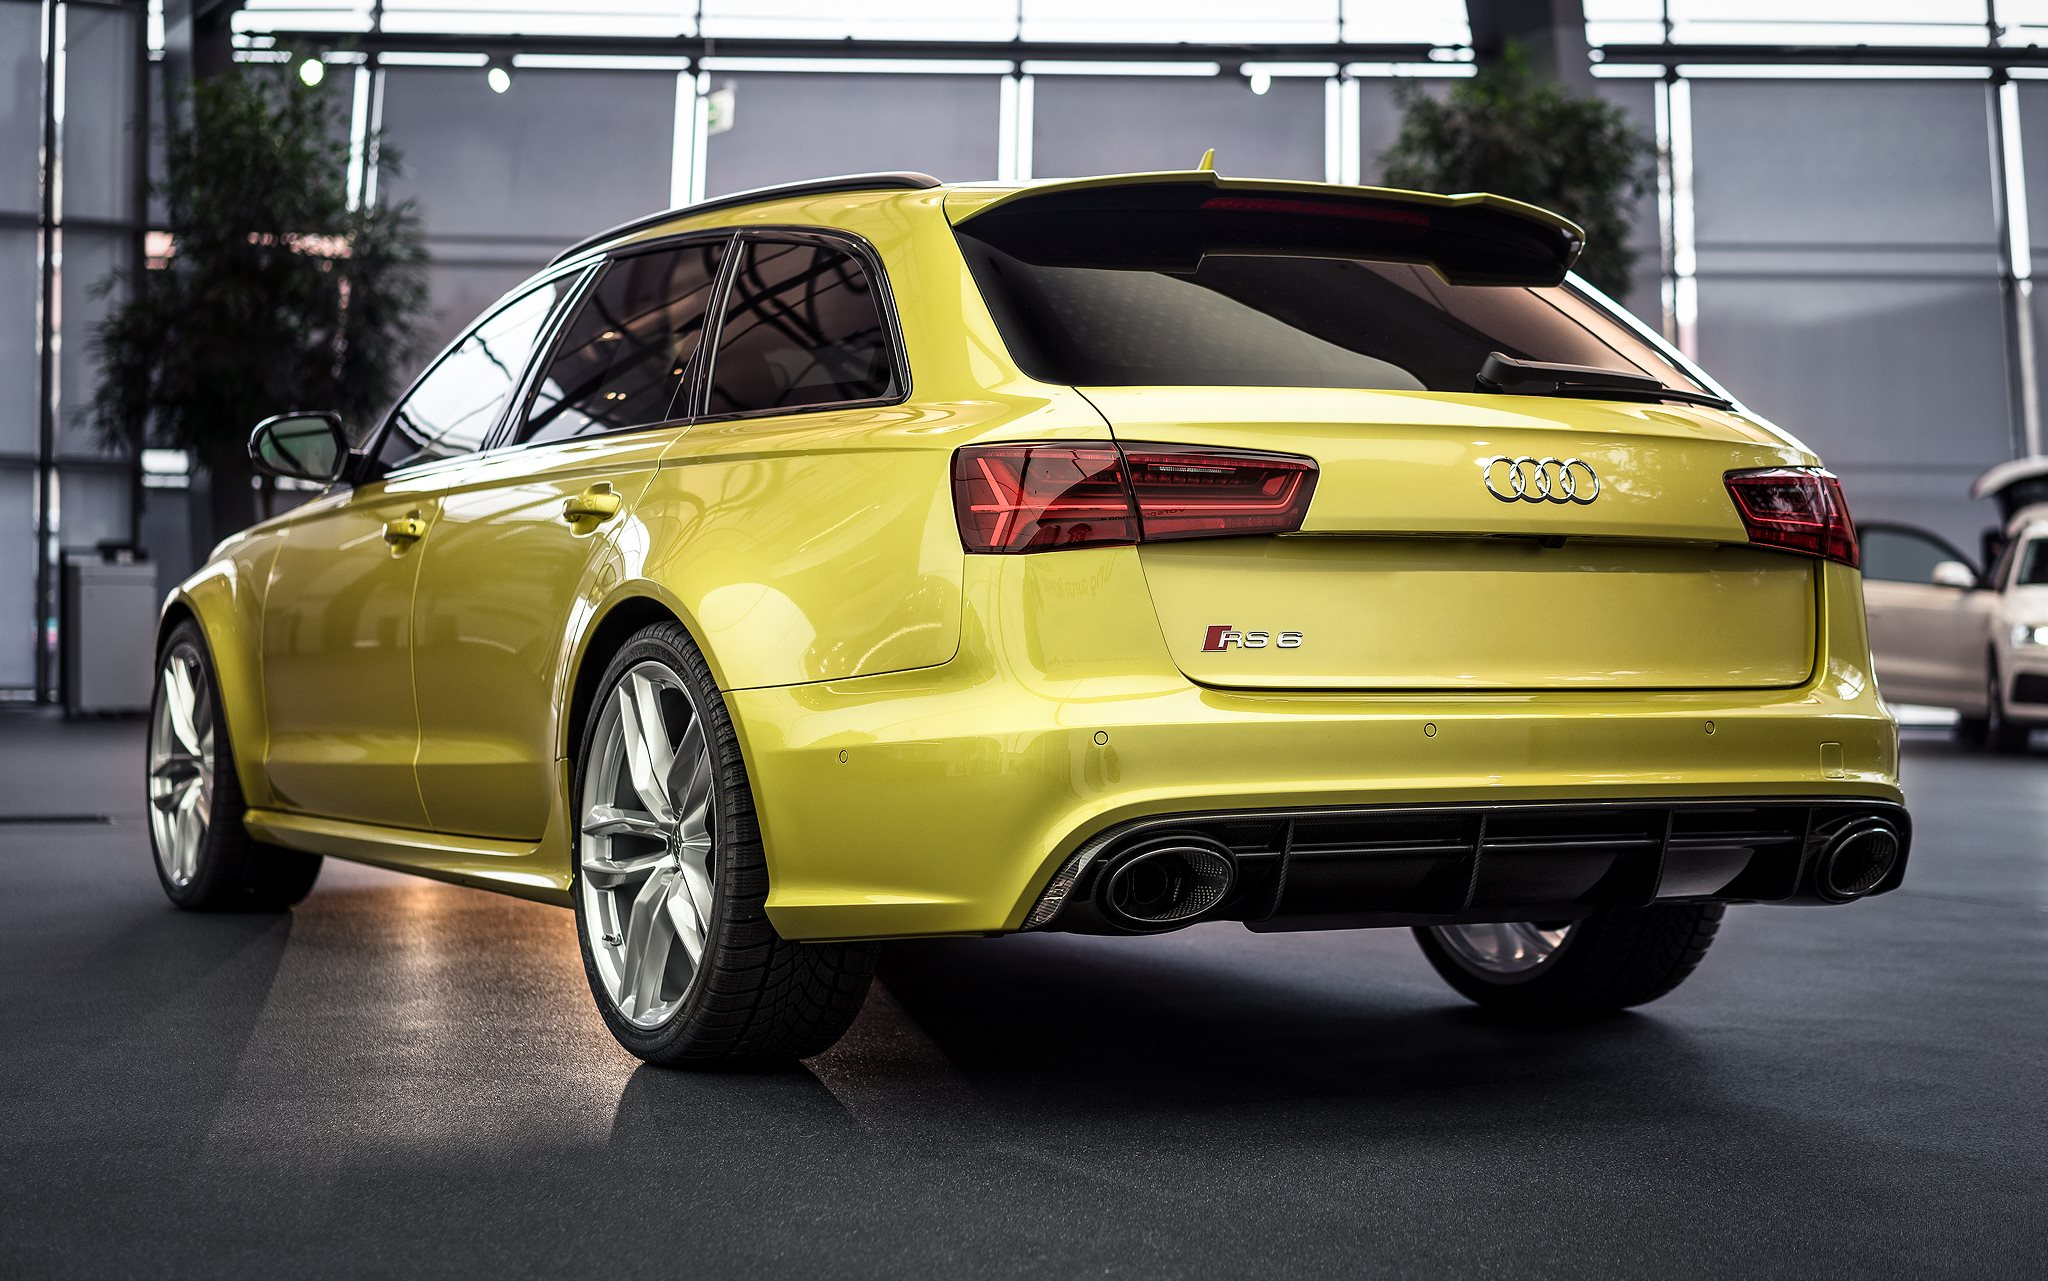 Audi RS In Austin Yellow Is Not The BMW M You Are Looking For - Austin audi